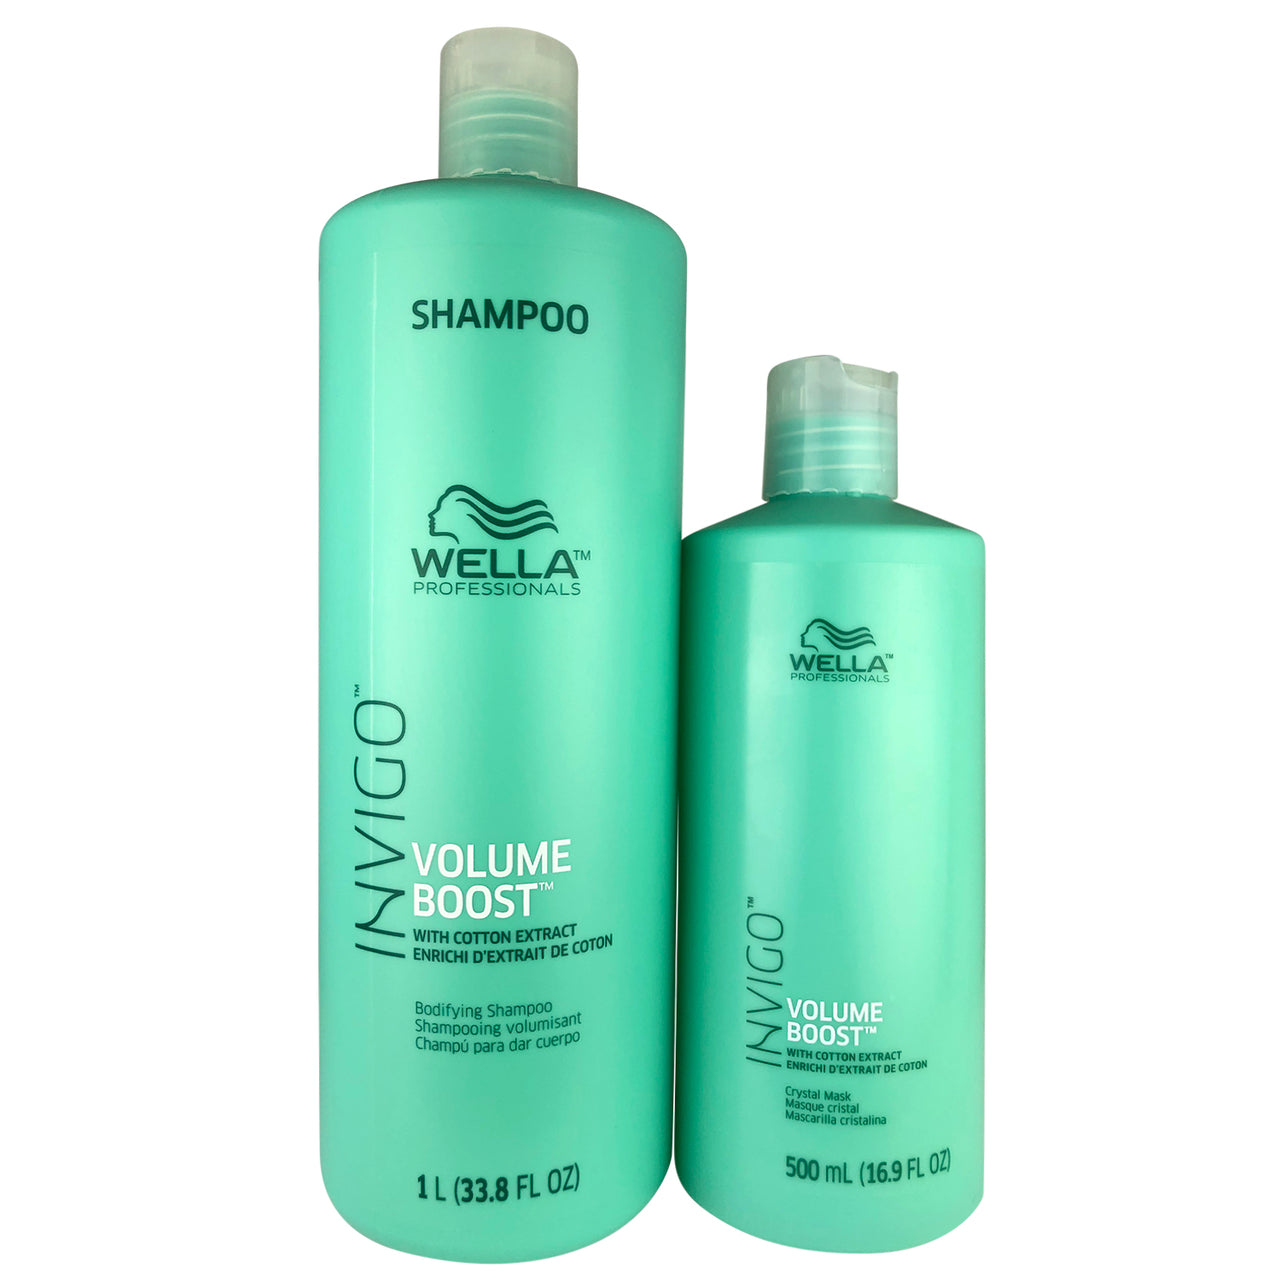 WELLA Invigo Hair Volume Boost Bodifying Shampoo 33.8 oz & Conditioner 16.9 oz Duo with Cotton Extract